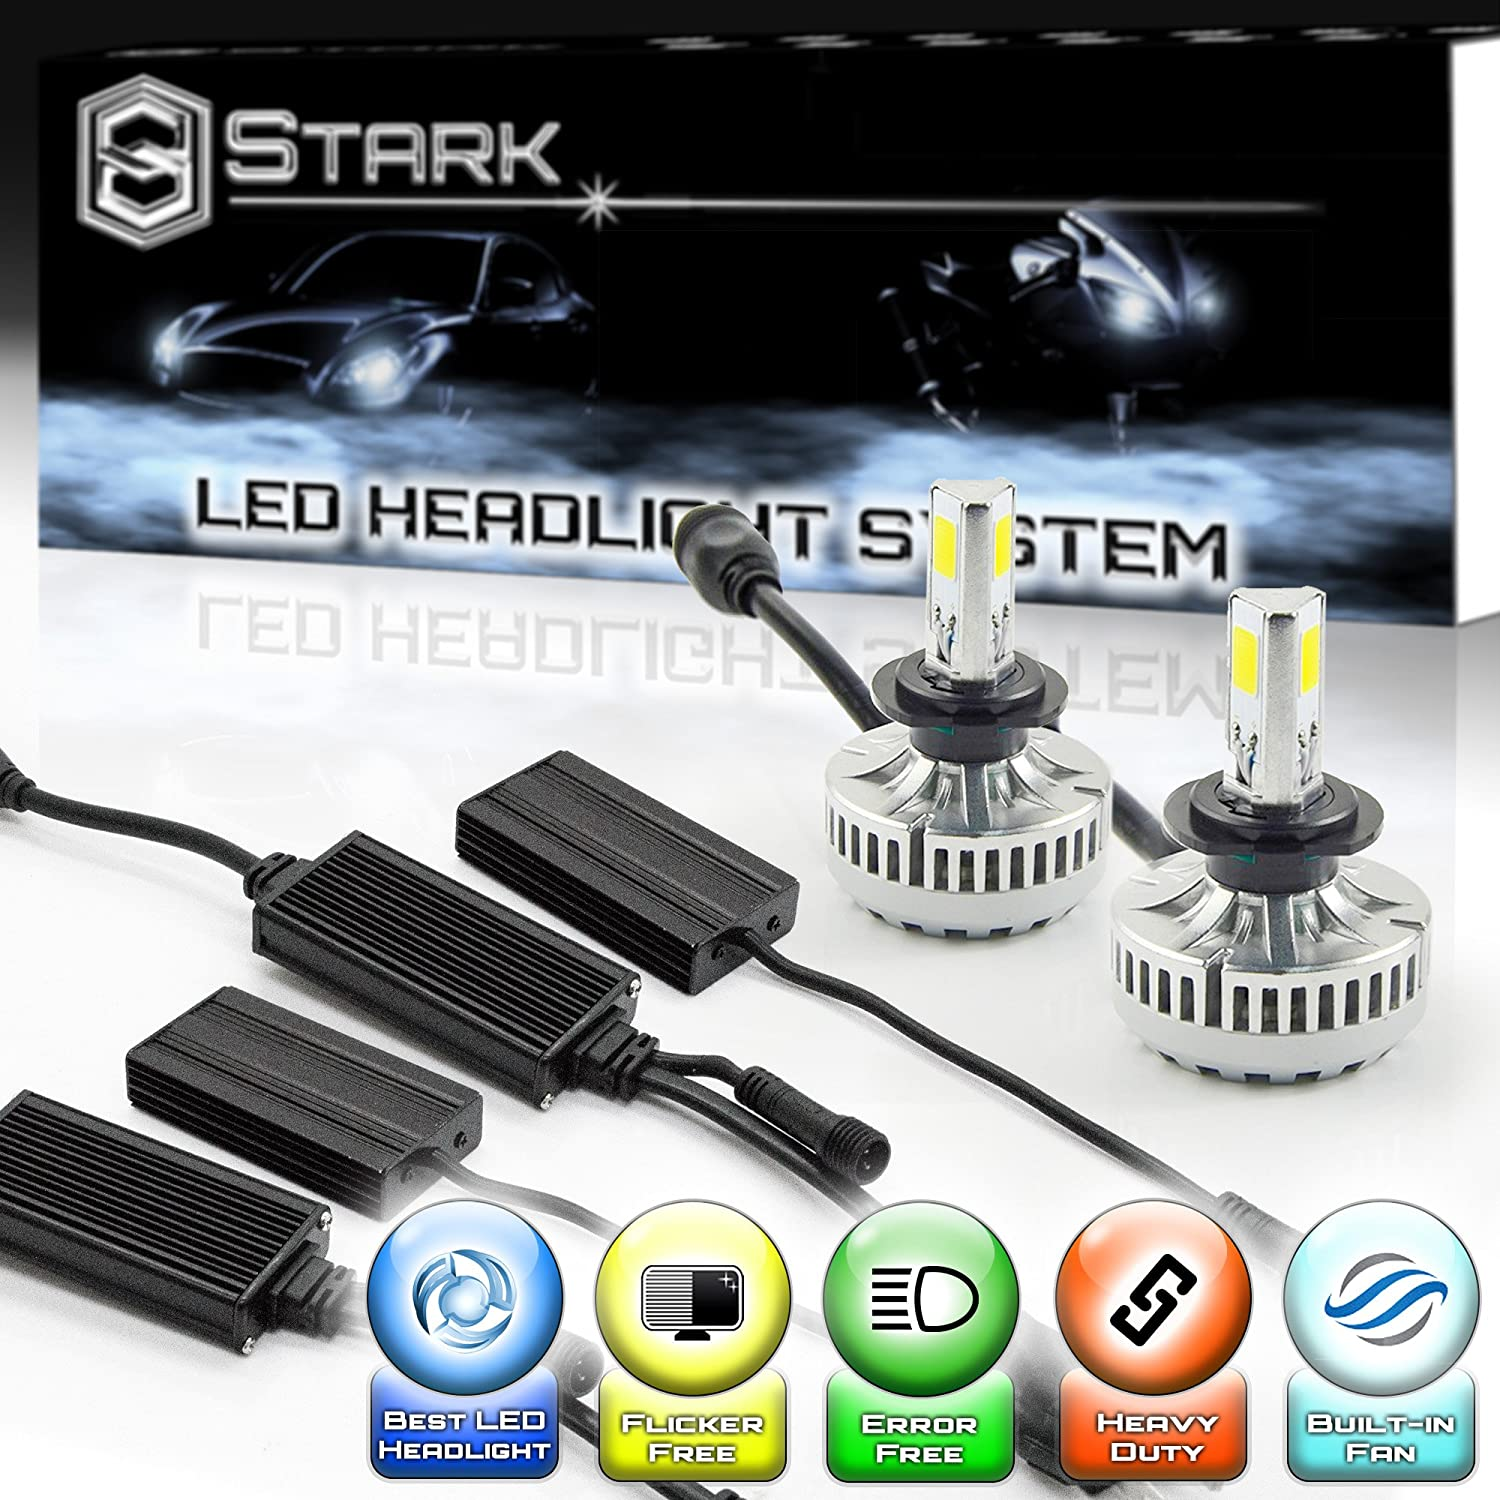 Stark 90W 9000LM LED Headlight Conversion Kit - Cool White 6000K 6K - Low Beam / High Beam / Fog Light Bulbs - H7 UNV inc